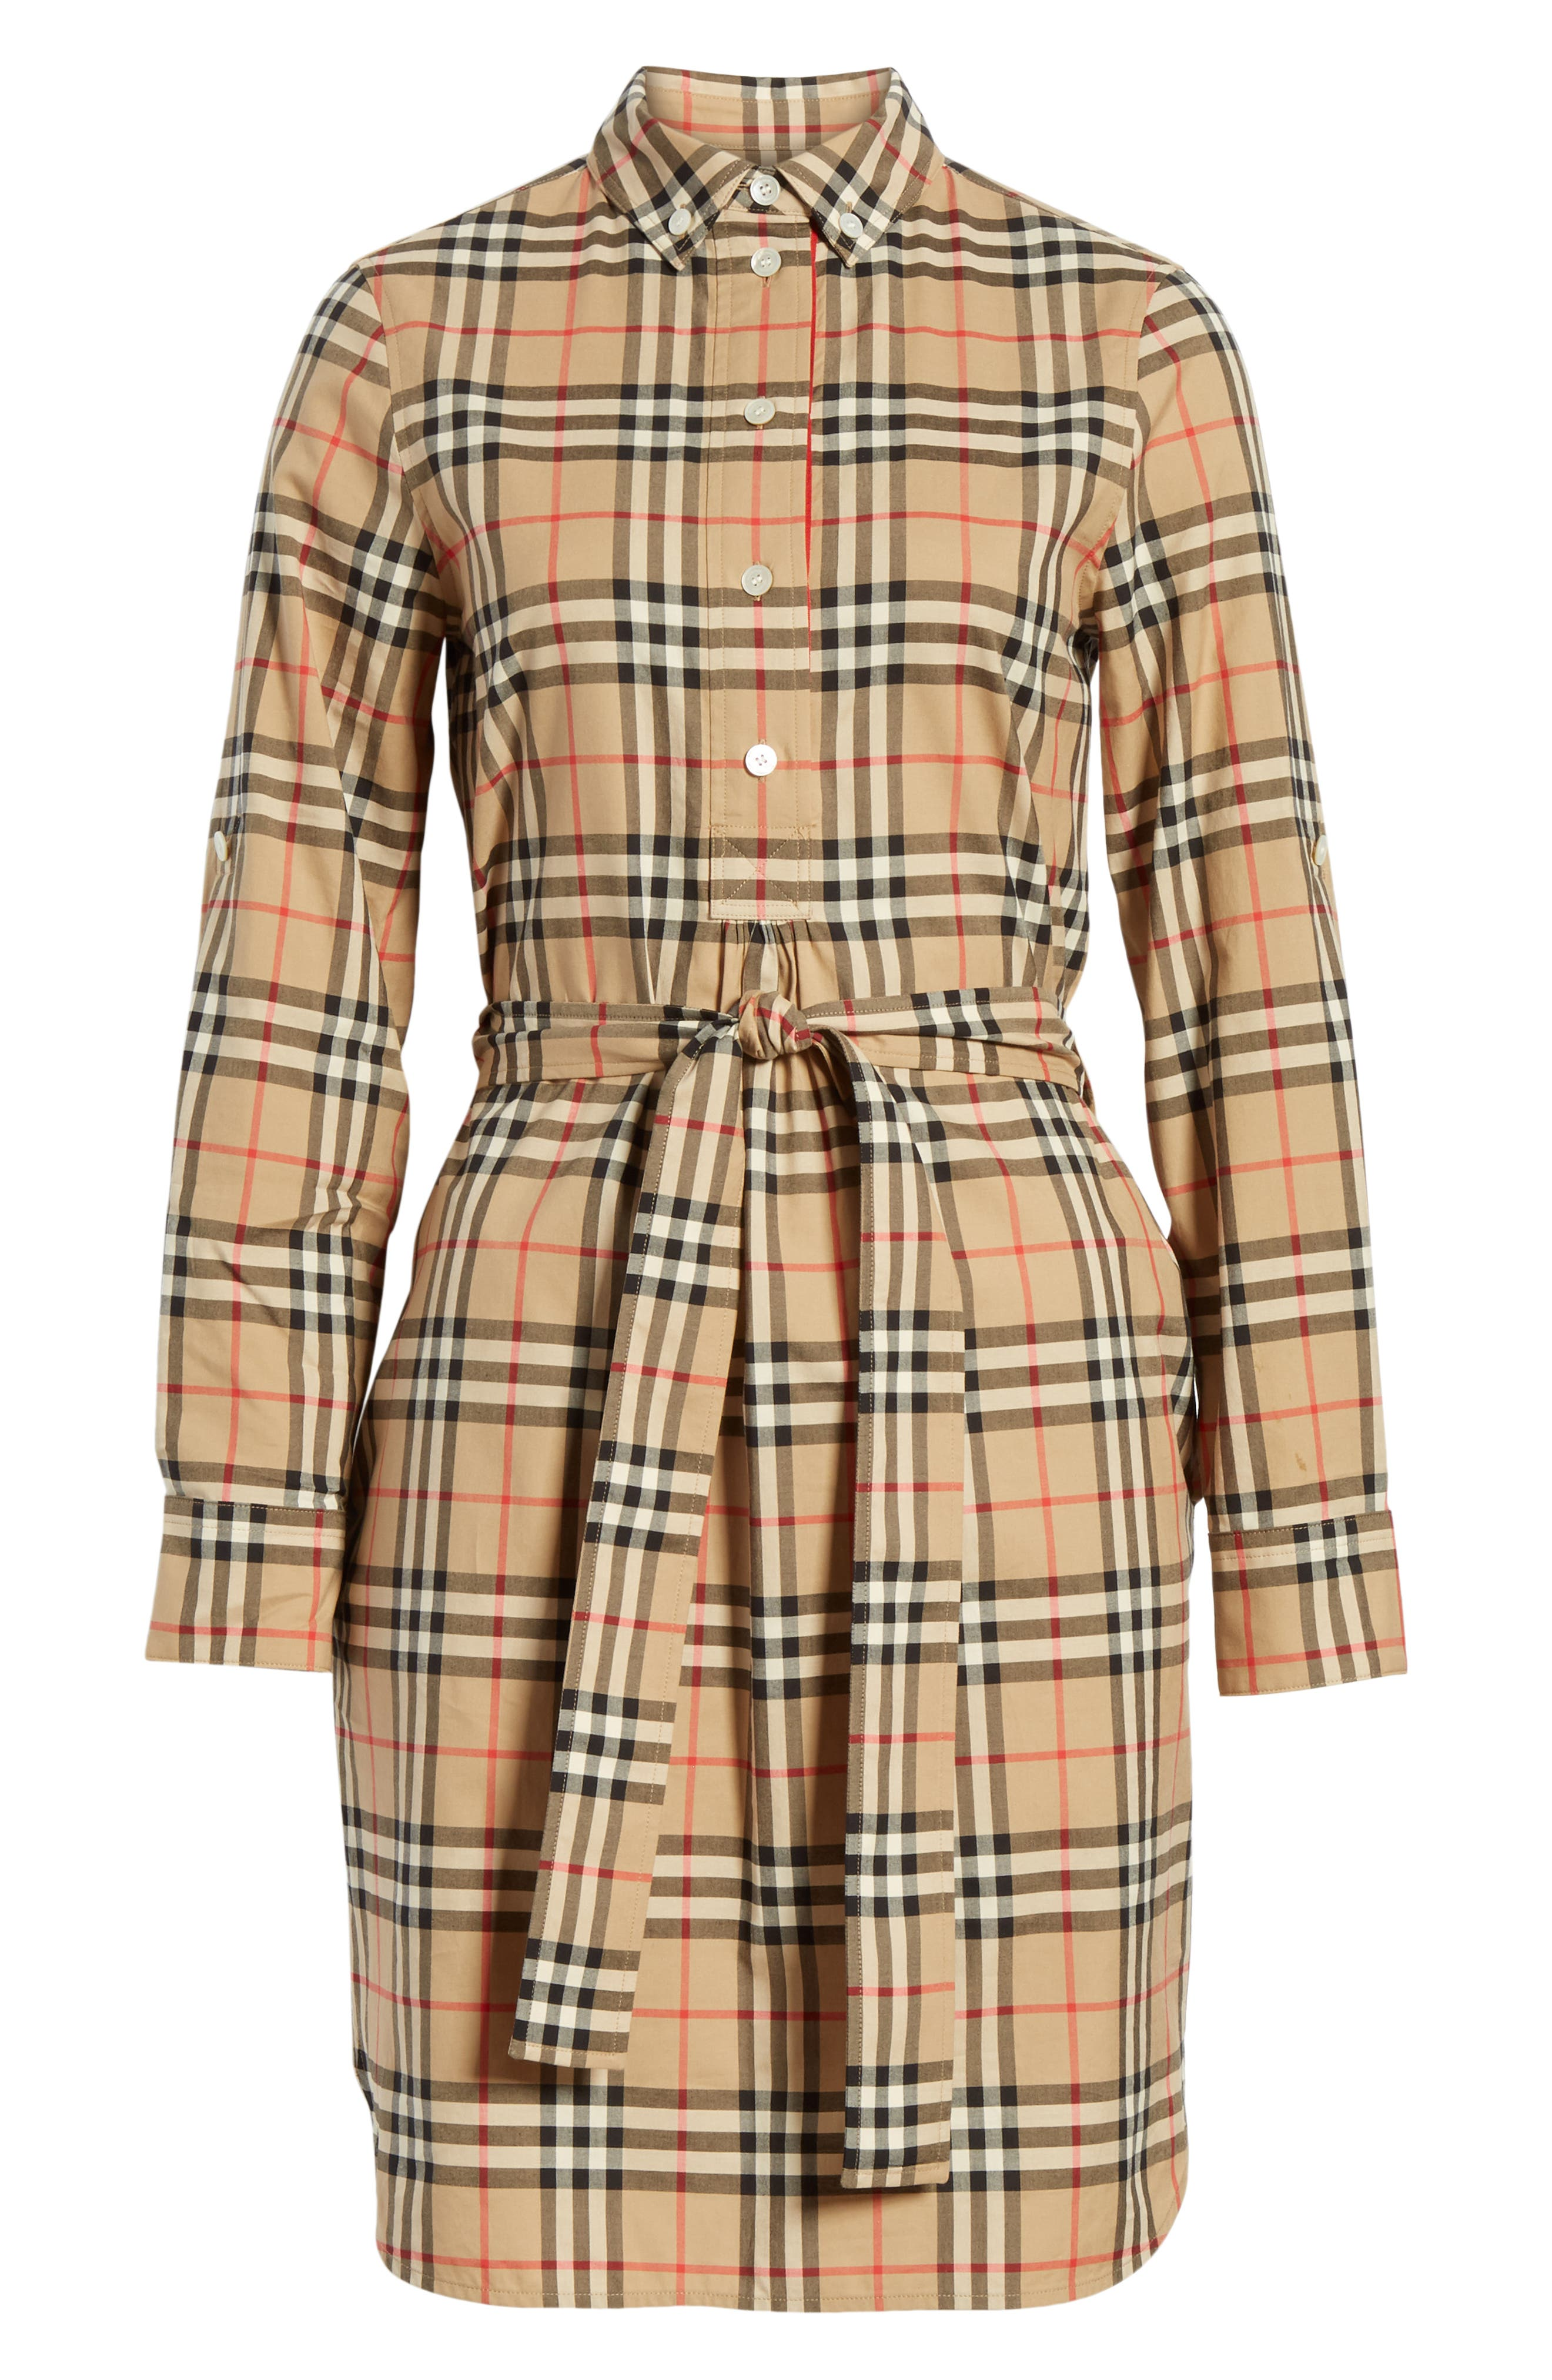 BURBERRY, Giovanna Archive Check Shirtdress, Alternate thumbnail 6, color, ARCHIVE BEIGE IP CHK